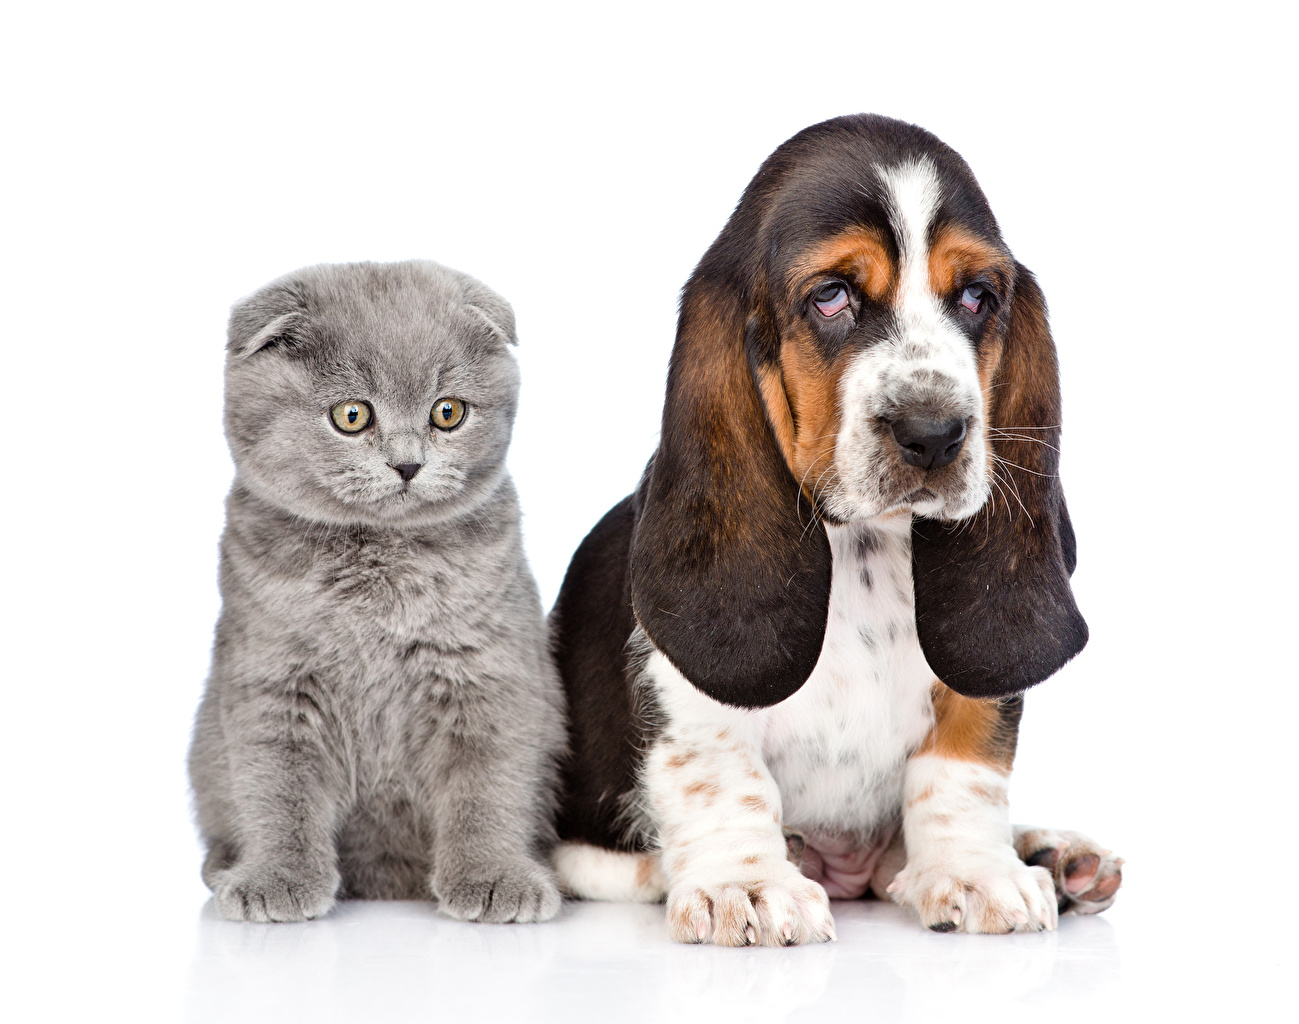 Wallpaper Kittens Basset Hound Dogs Cats Two animal White background kitty cat dog cat 2 Animals